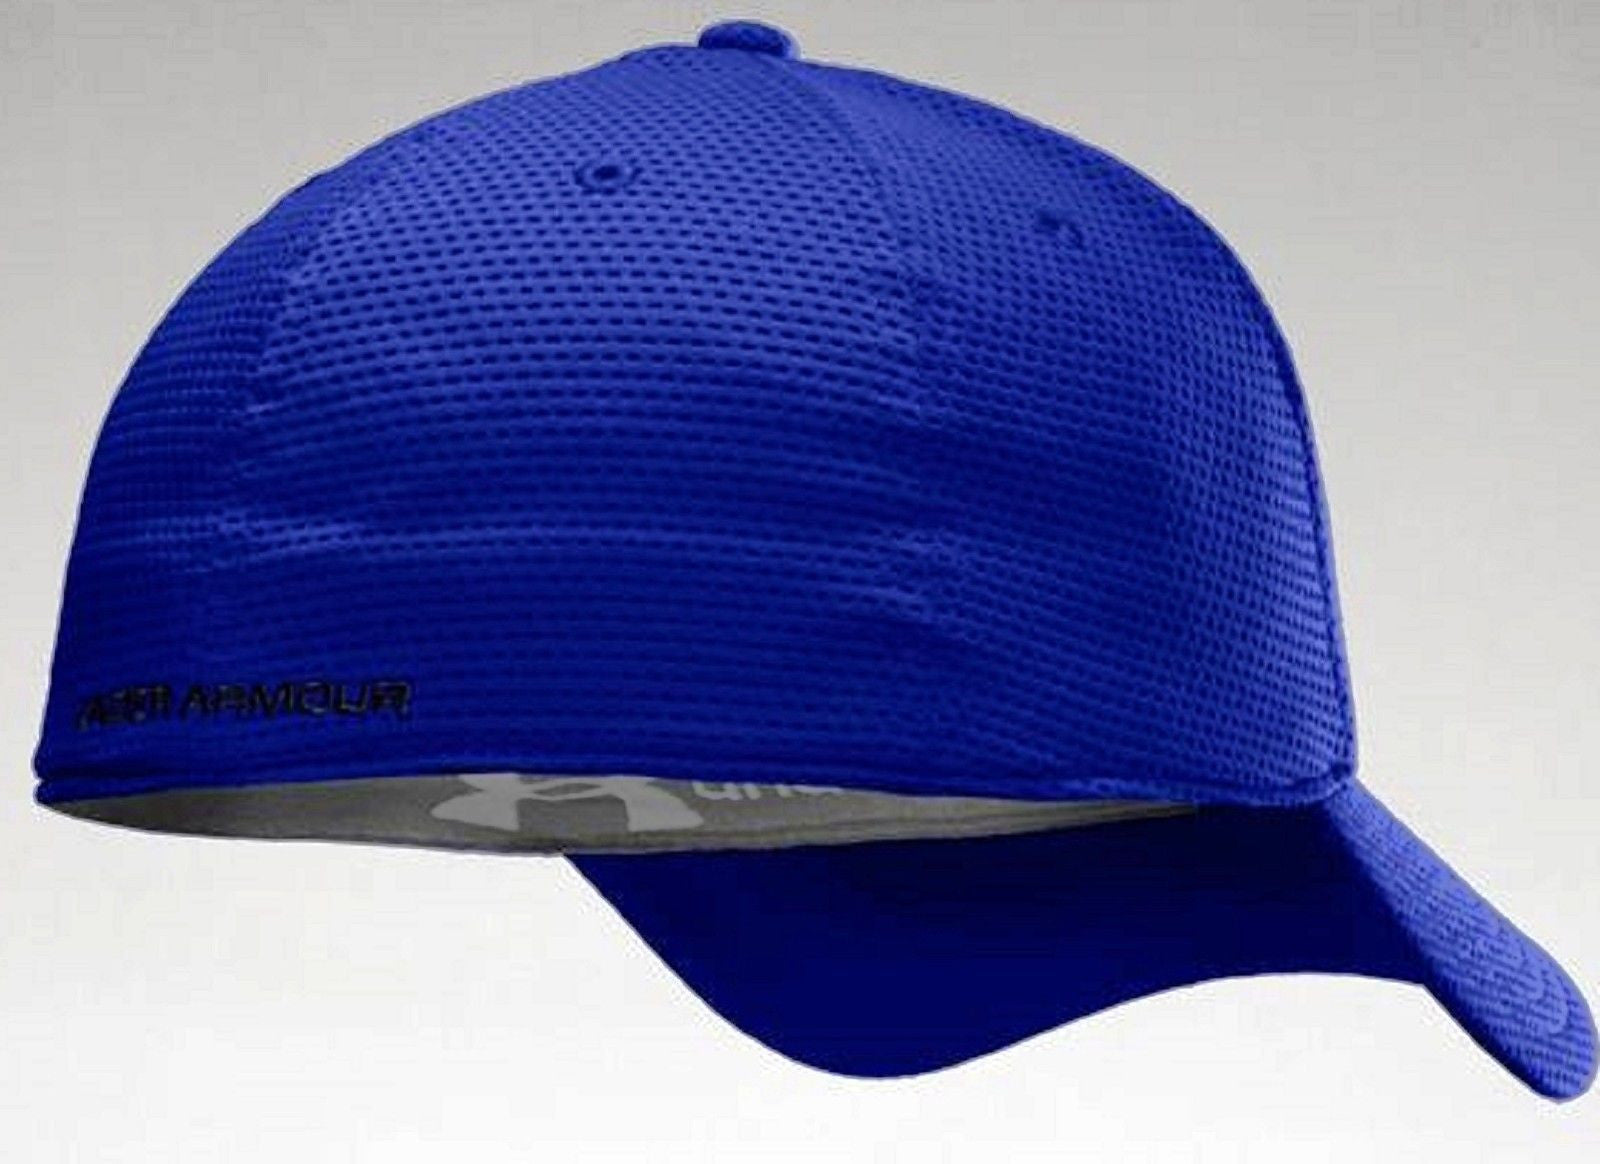 b49e4969a25 ... Under Armour Blitzing Stretch Fit Cap - Men s UA HeatGear PolyMesh  Baseball Hat ...